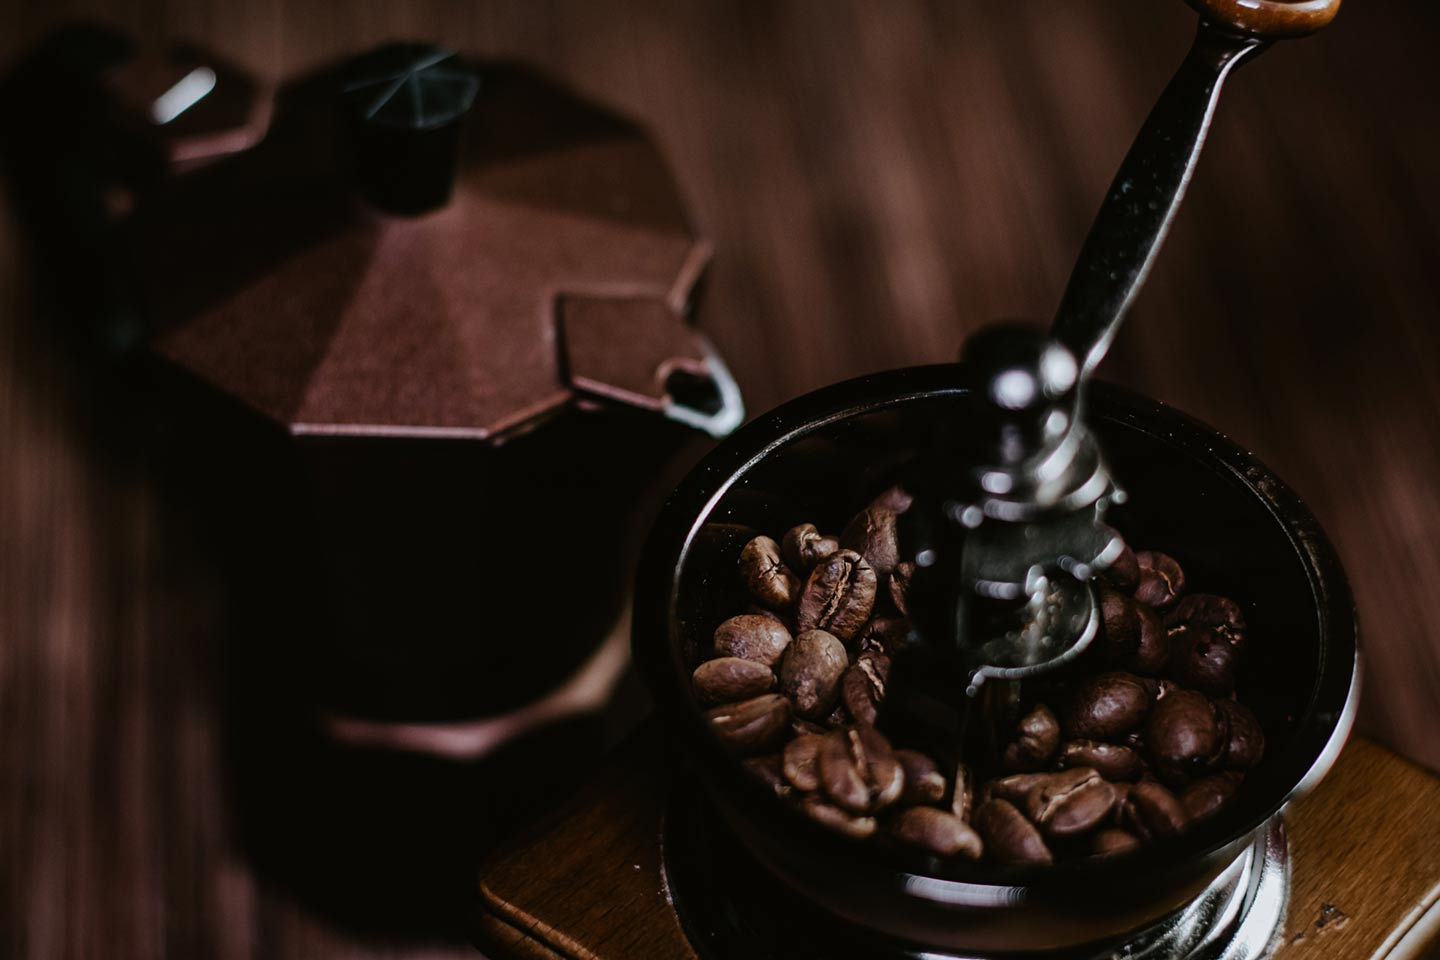 Guide to enjoy coffee with your Moka pot